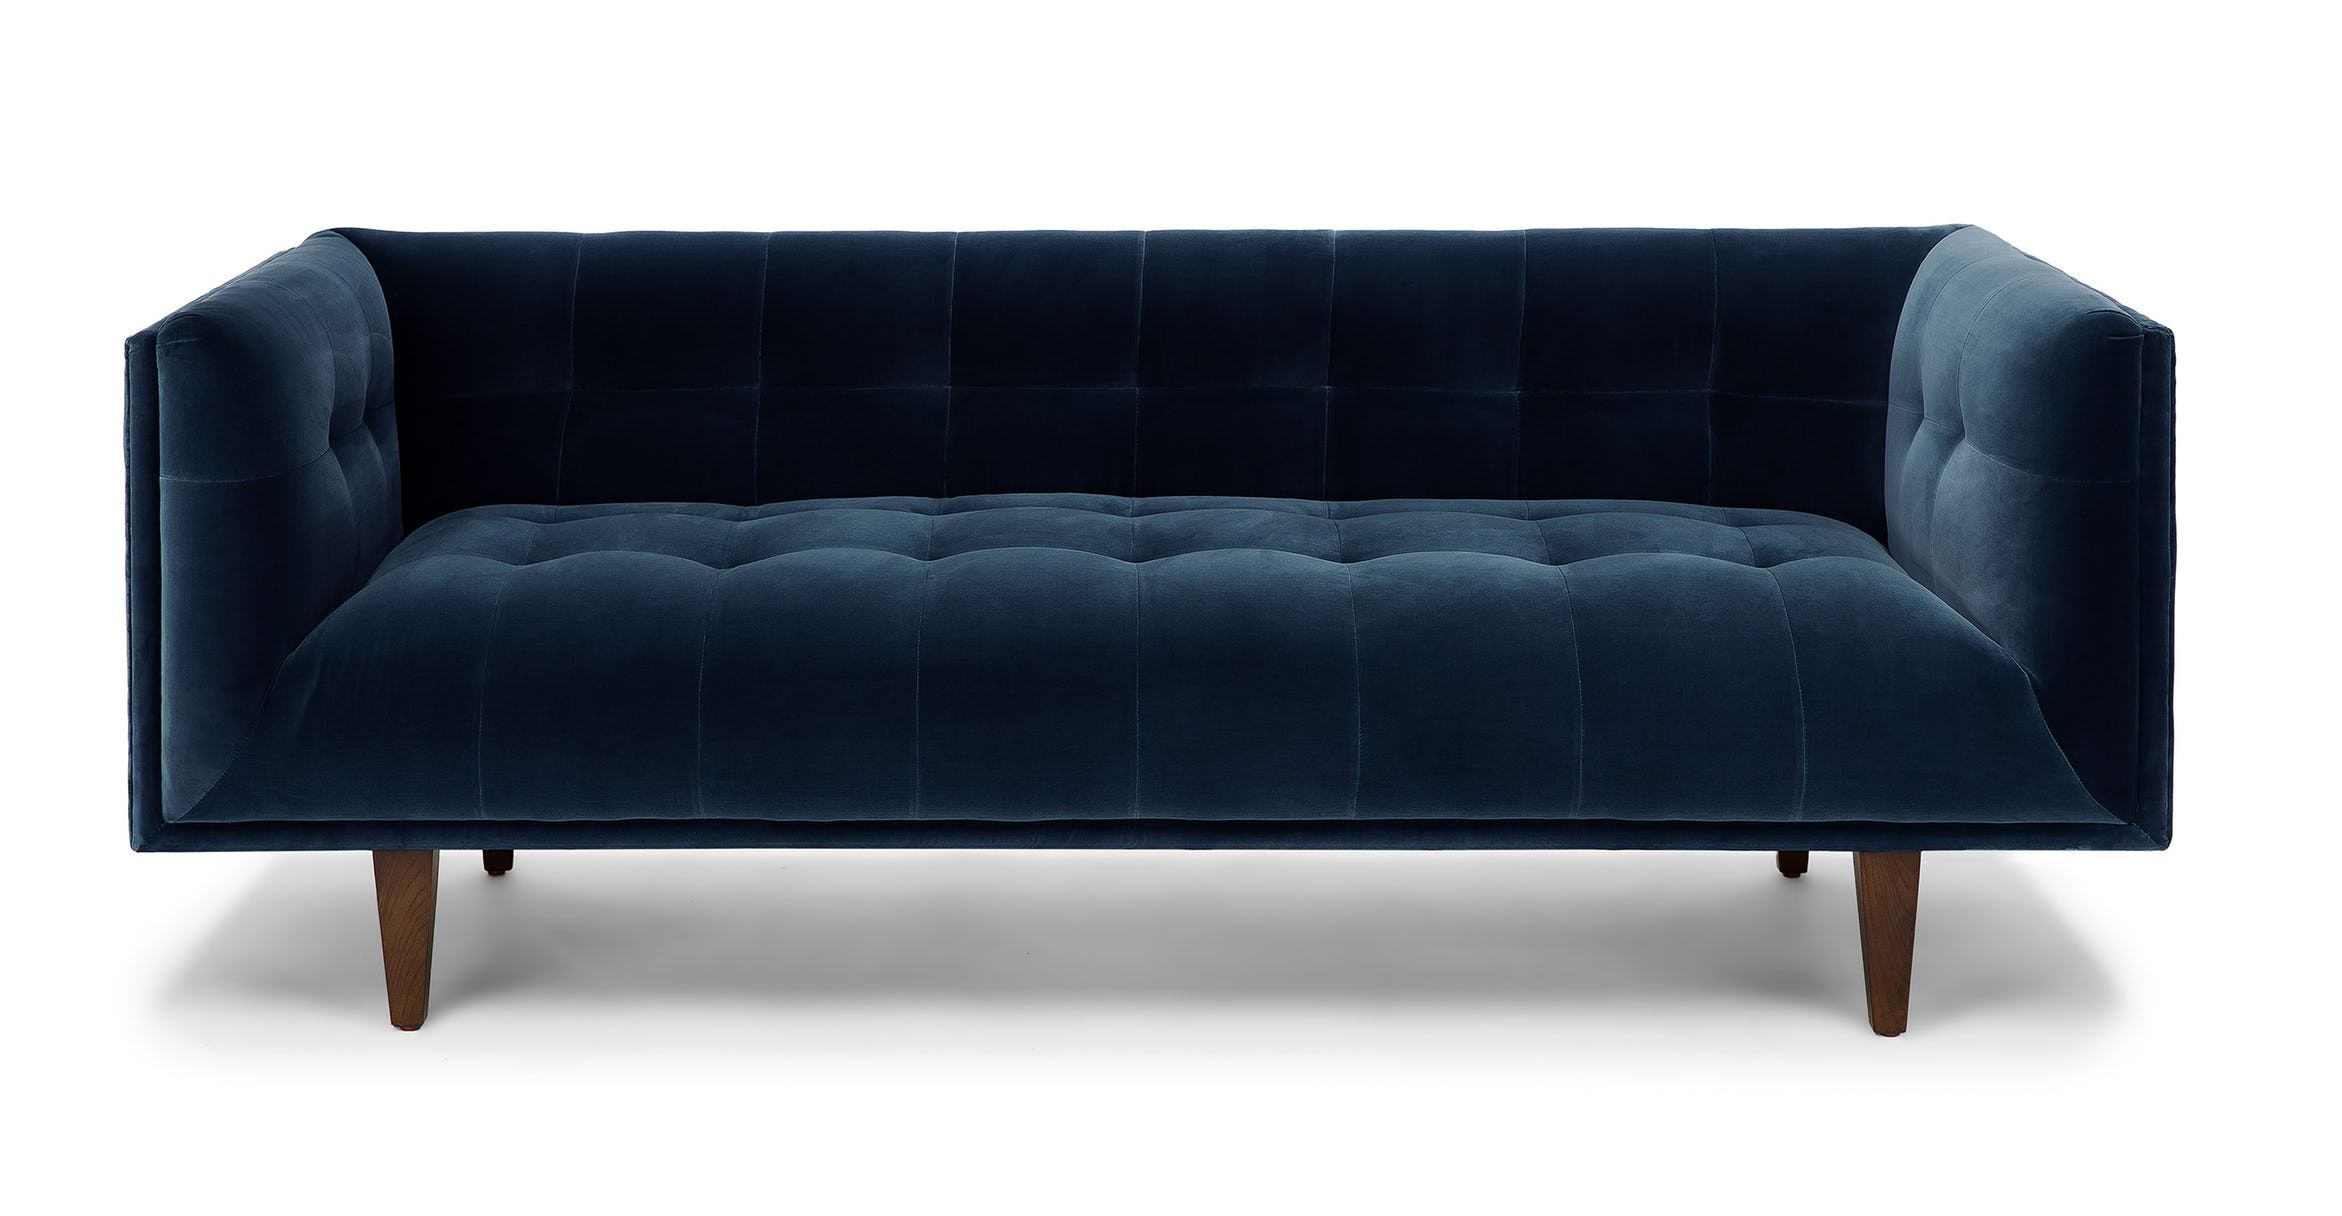 A tufted navy blue velvet 3-seater sofa with tapered wooden legs.